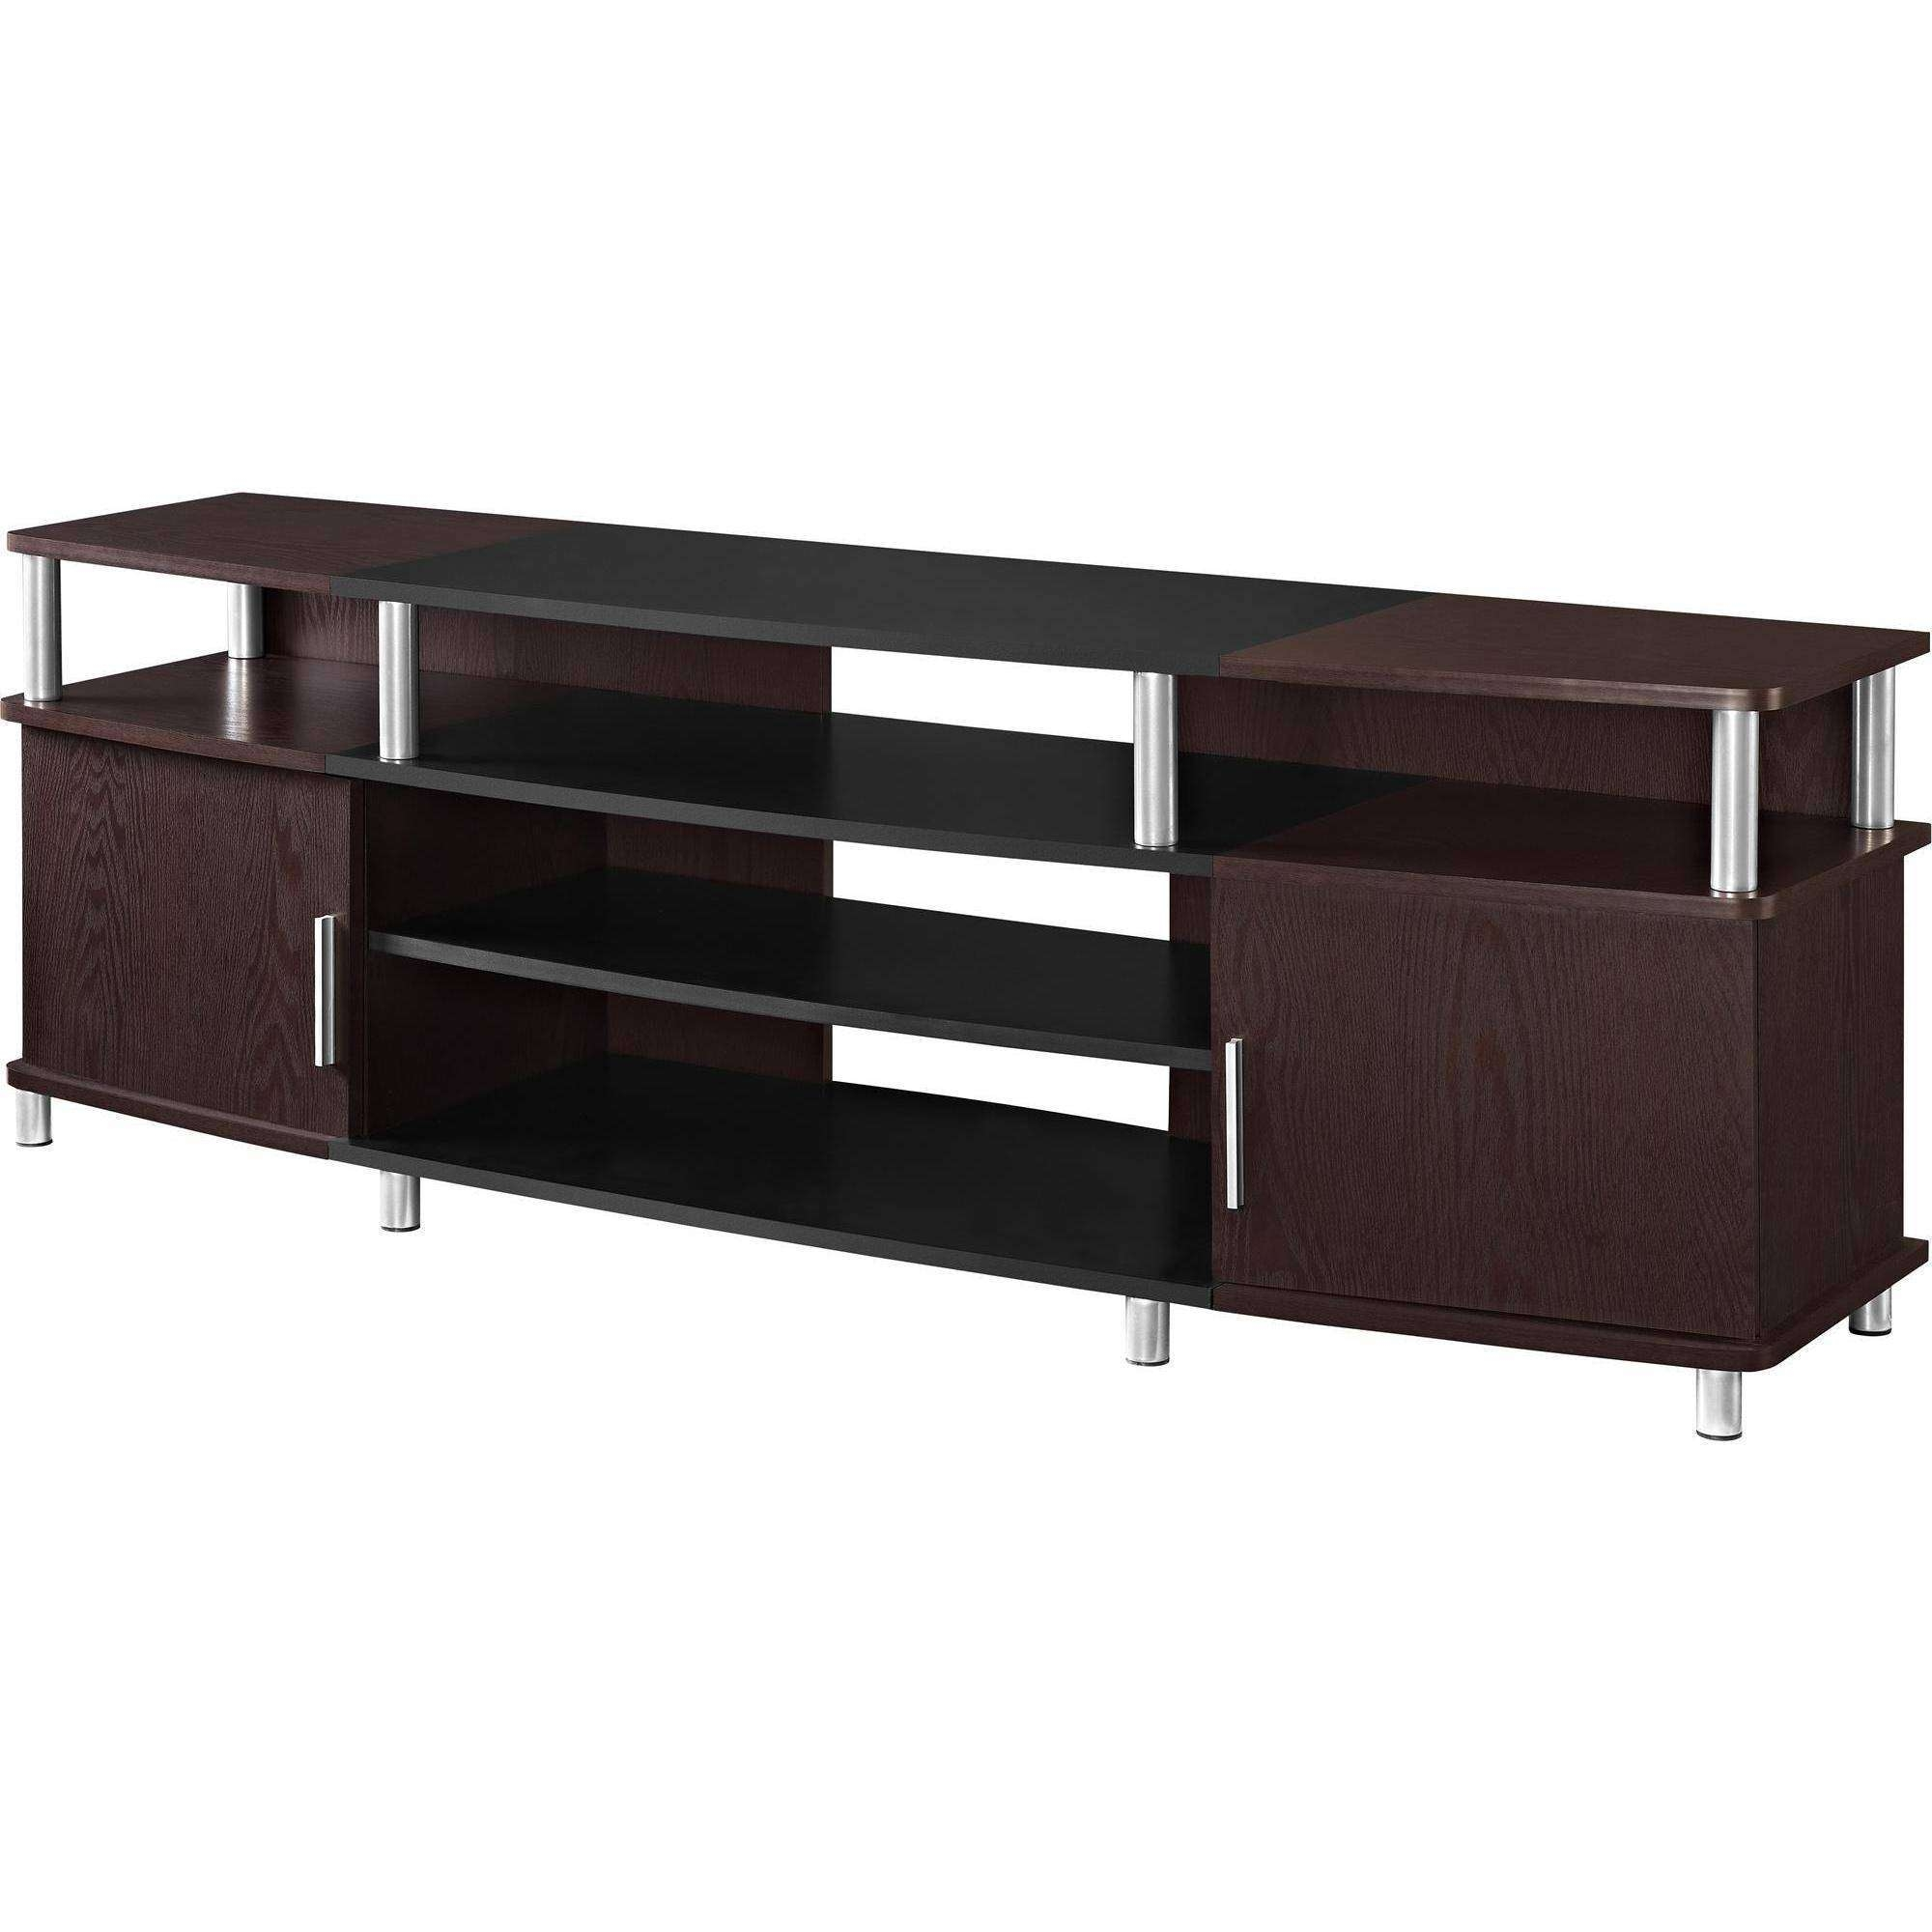 Furnitures Tv Stand For Inch Flat Screen Ameriwood Home Carson Tvs For Tv Stands For 70 Inch Tvs (View 11 of 15)